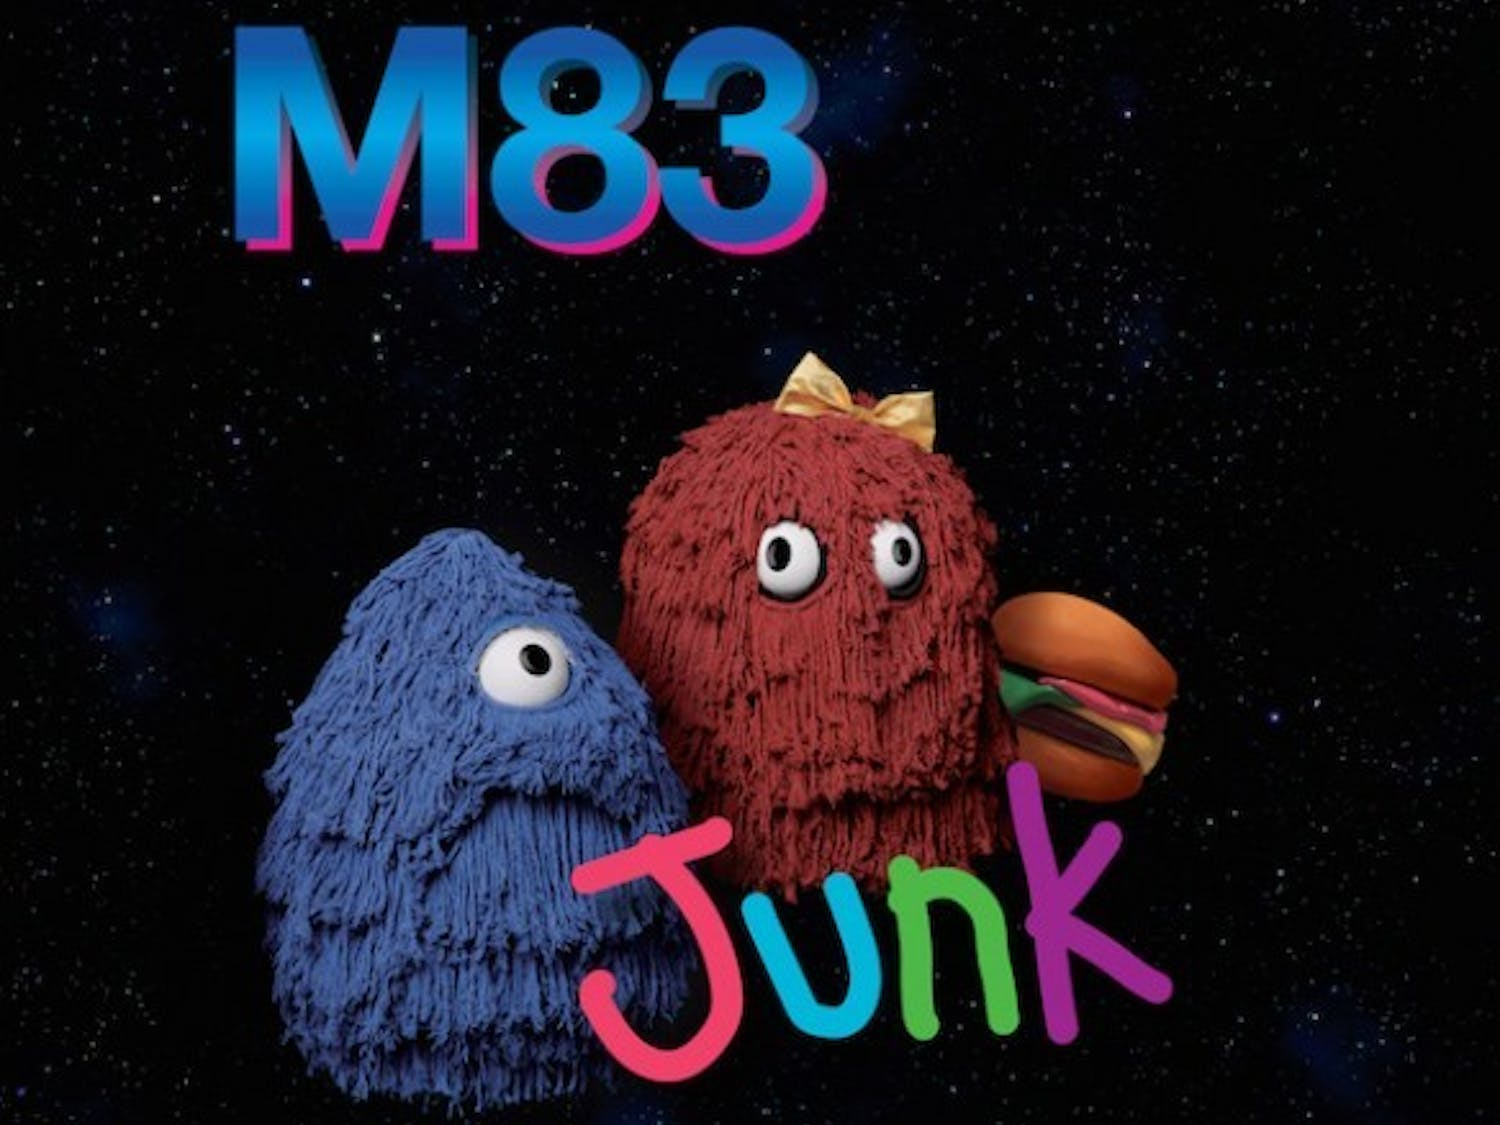 """""""Junk,"""" the new M83 album, has a varied collection of tracks that feature an '80s psychedelic theme."""